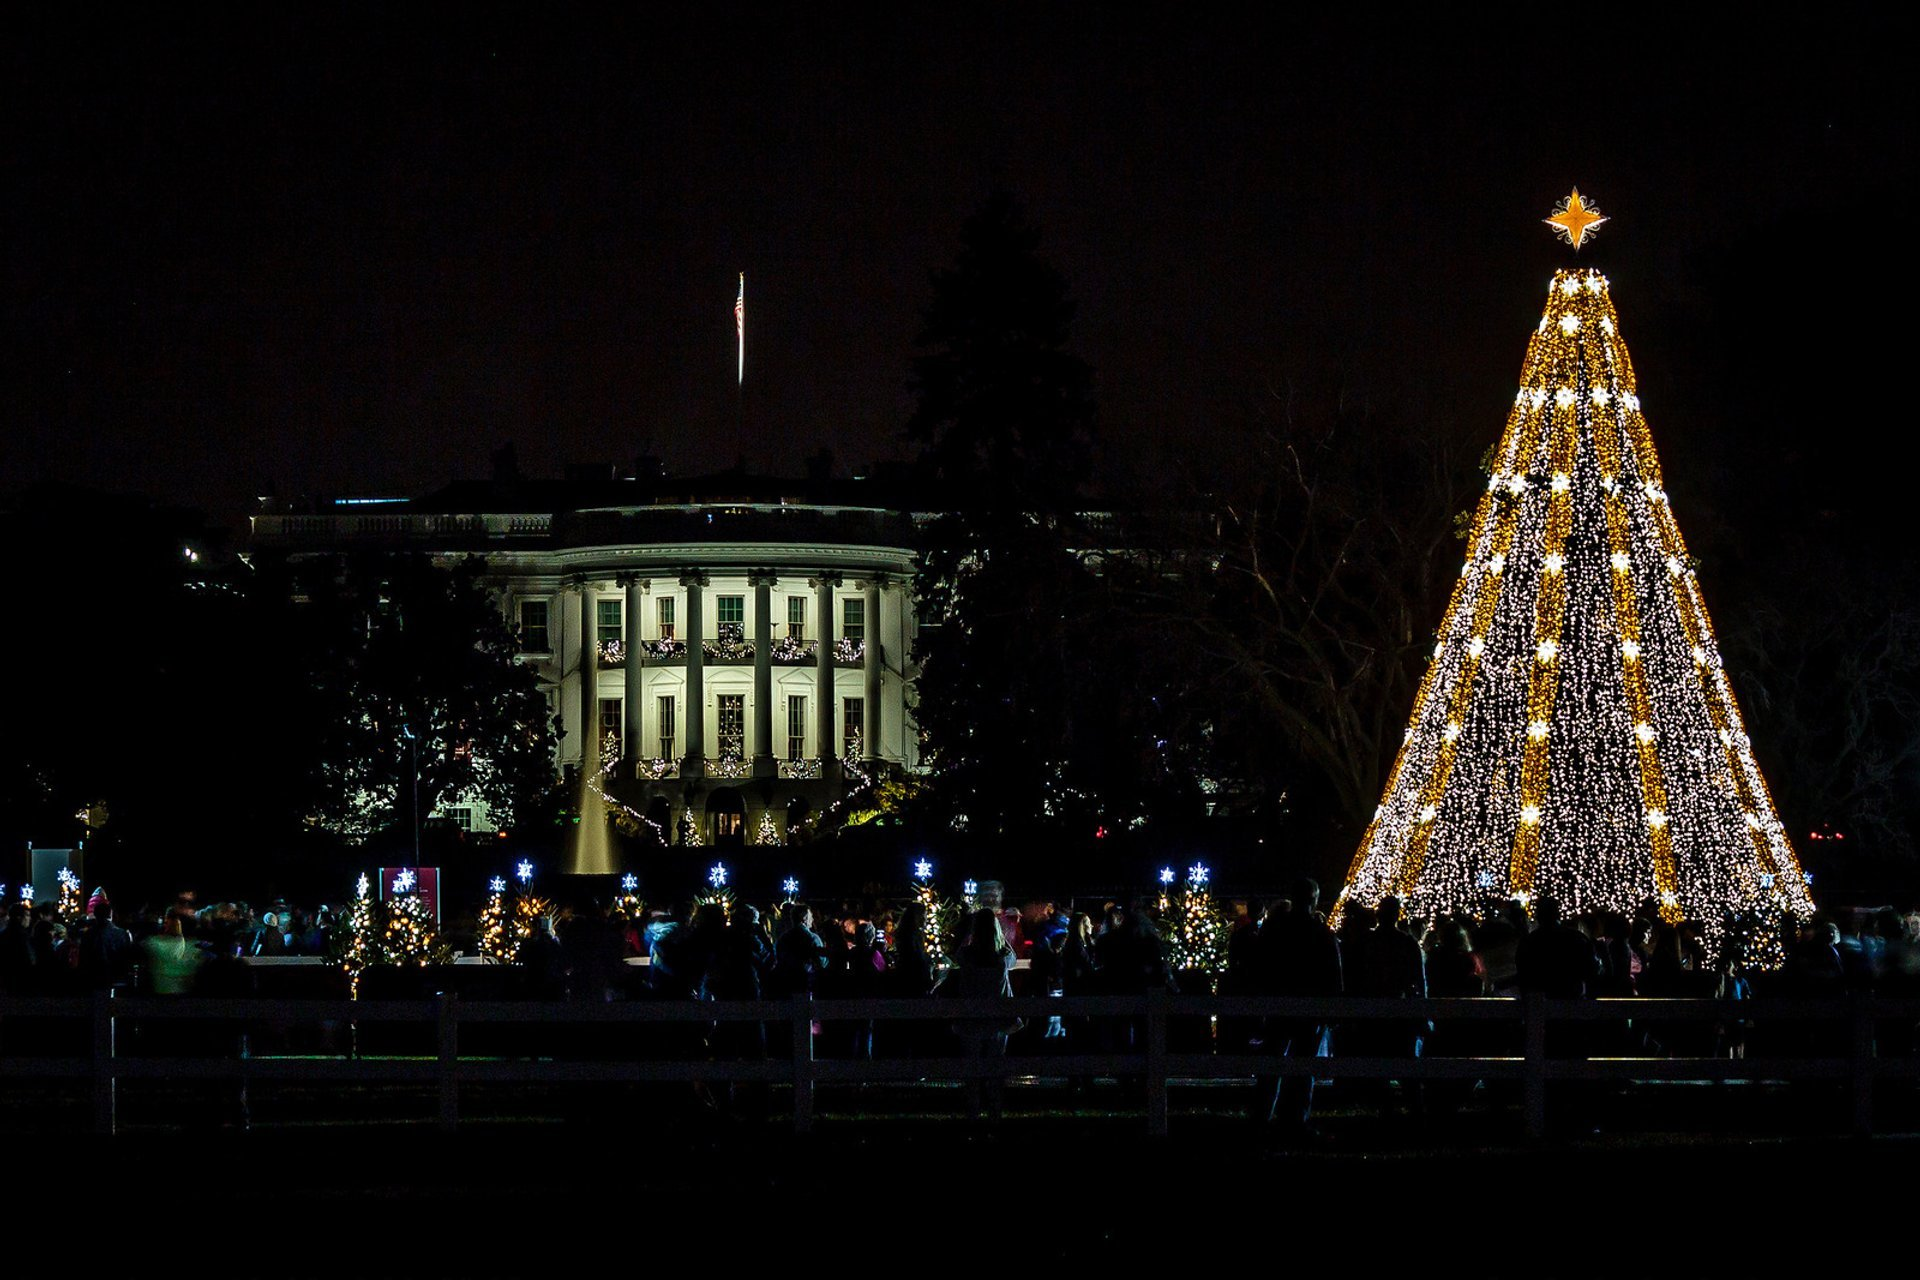 National Christmas Tree 2019.National Christmas Tree Lighting Ceremony 2019 In Washington